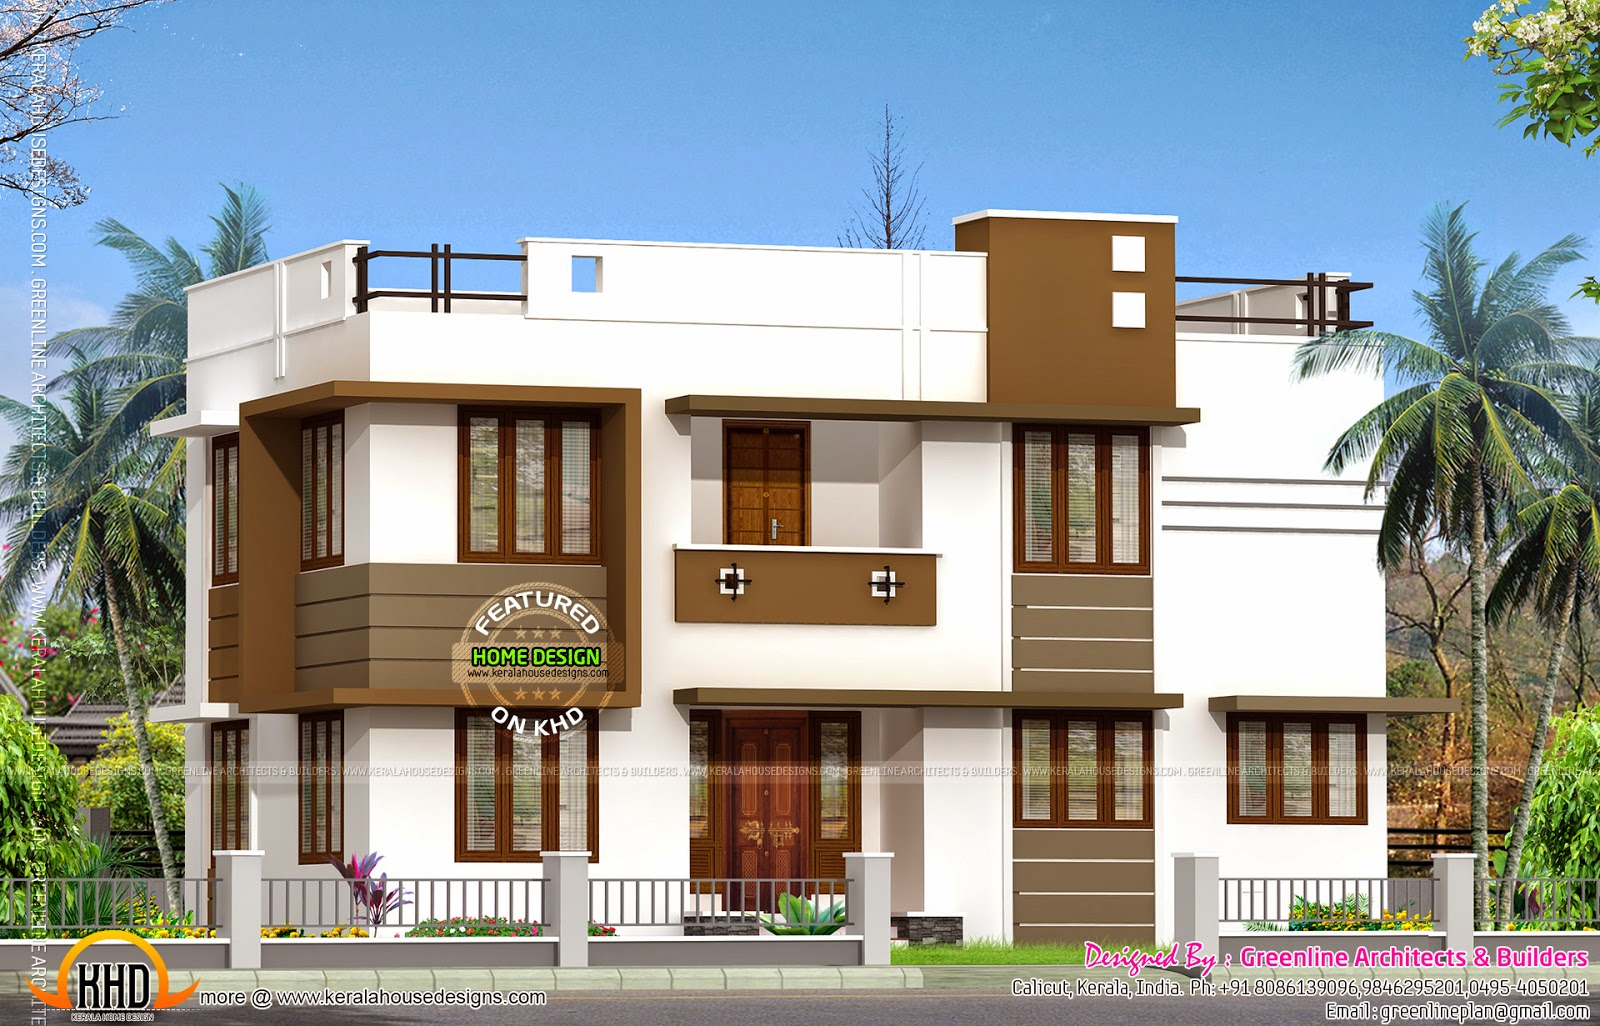 Low budget double storied house kerala home design and for Kerala home designs photos in double floor